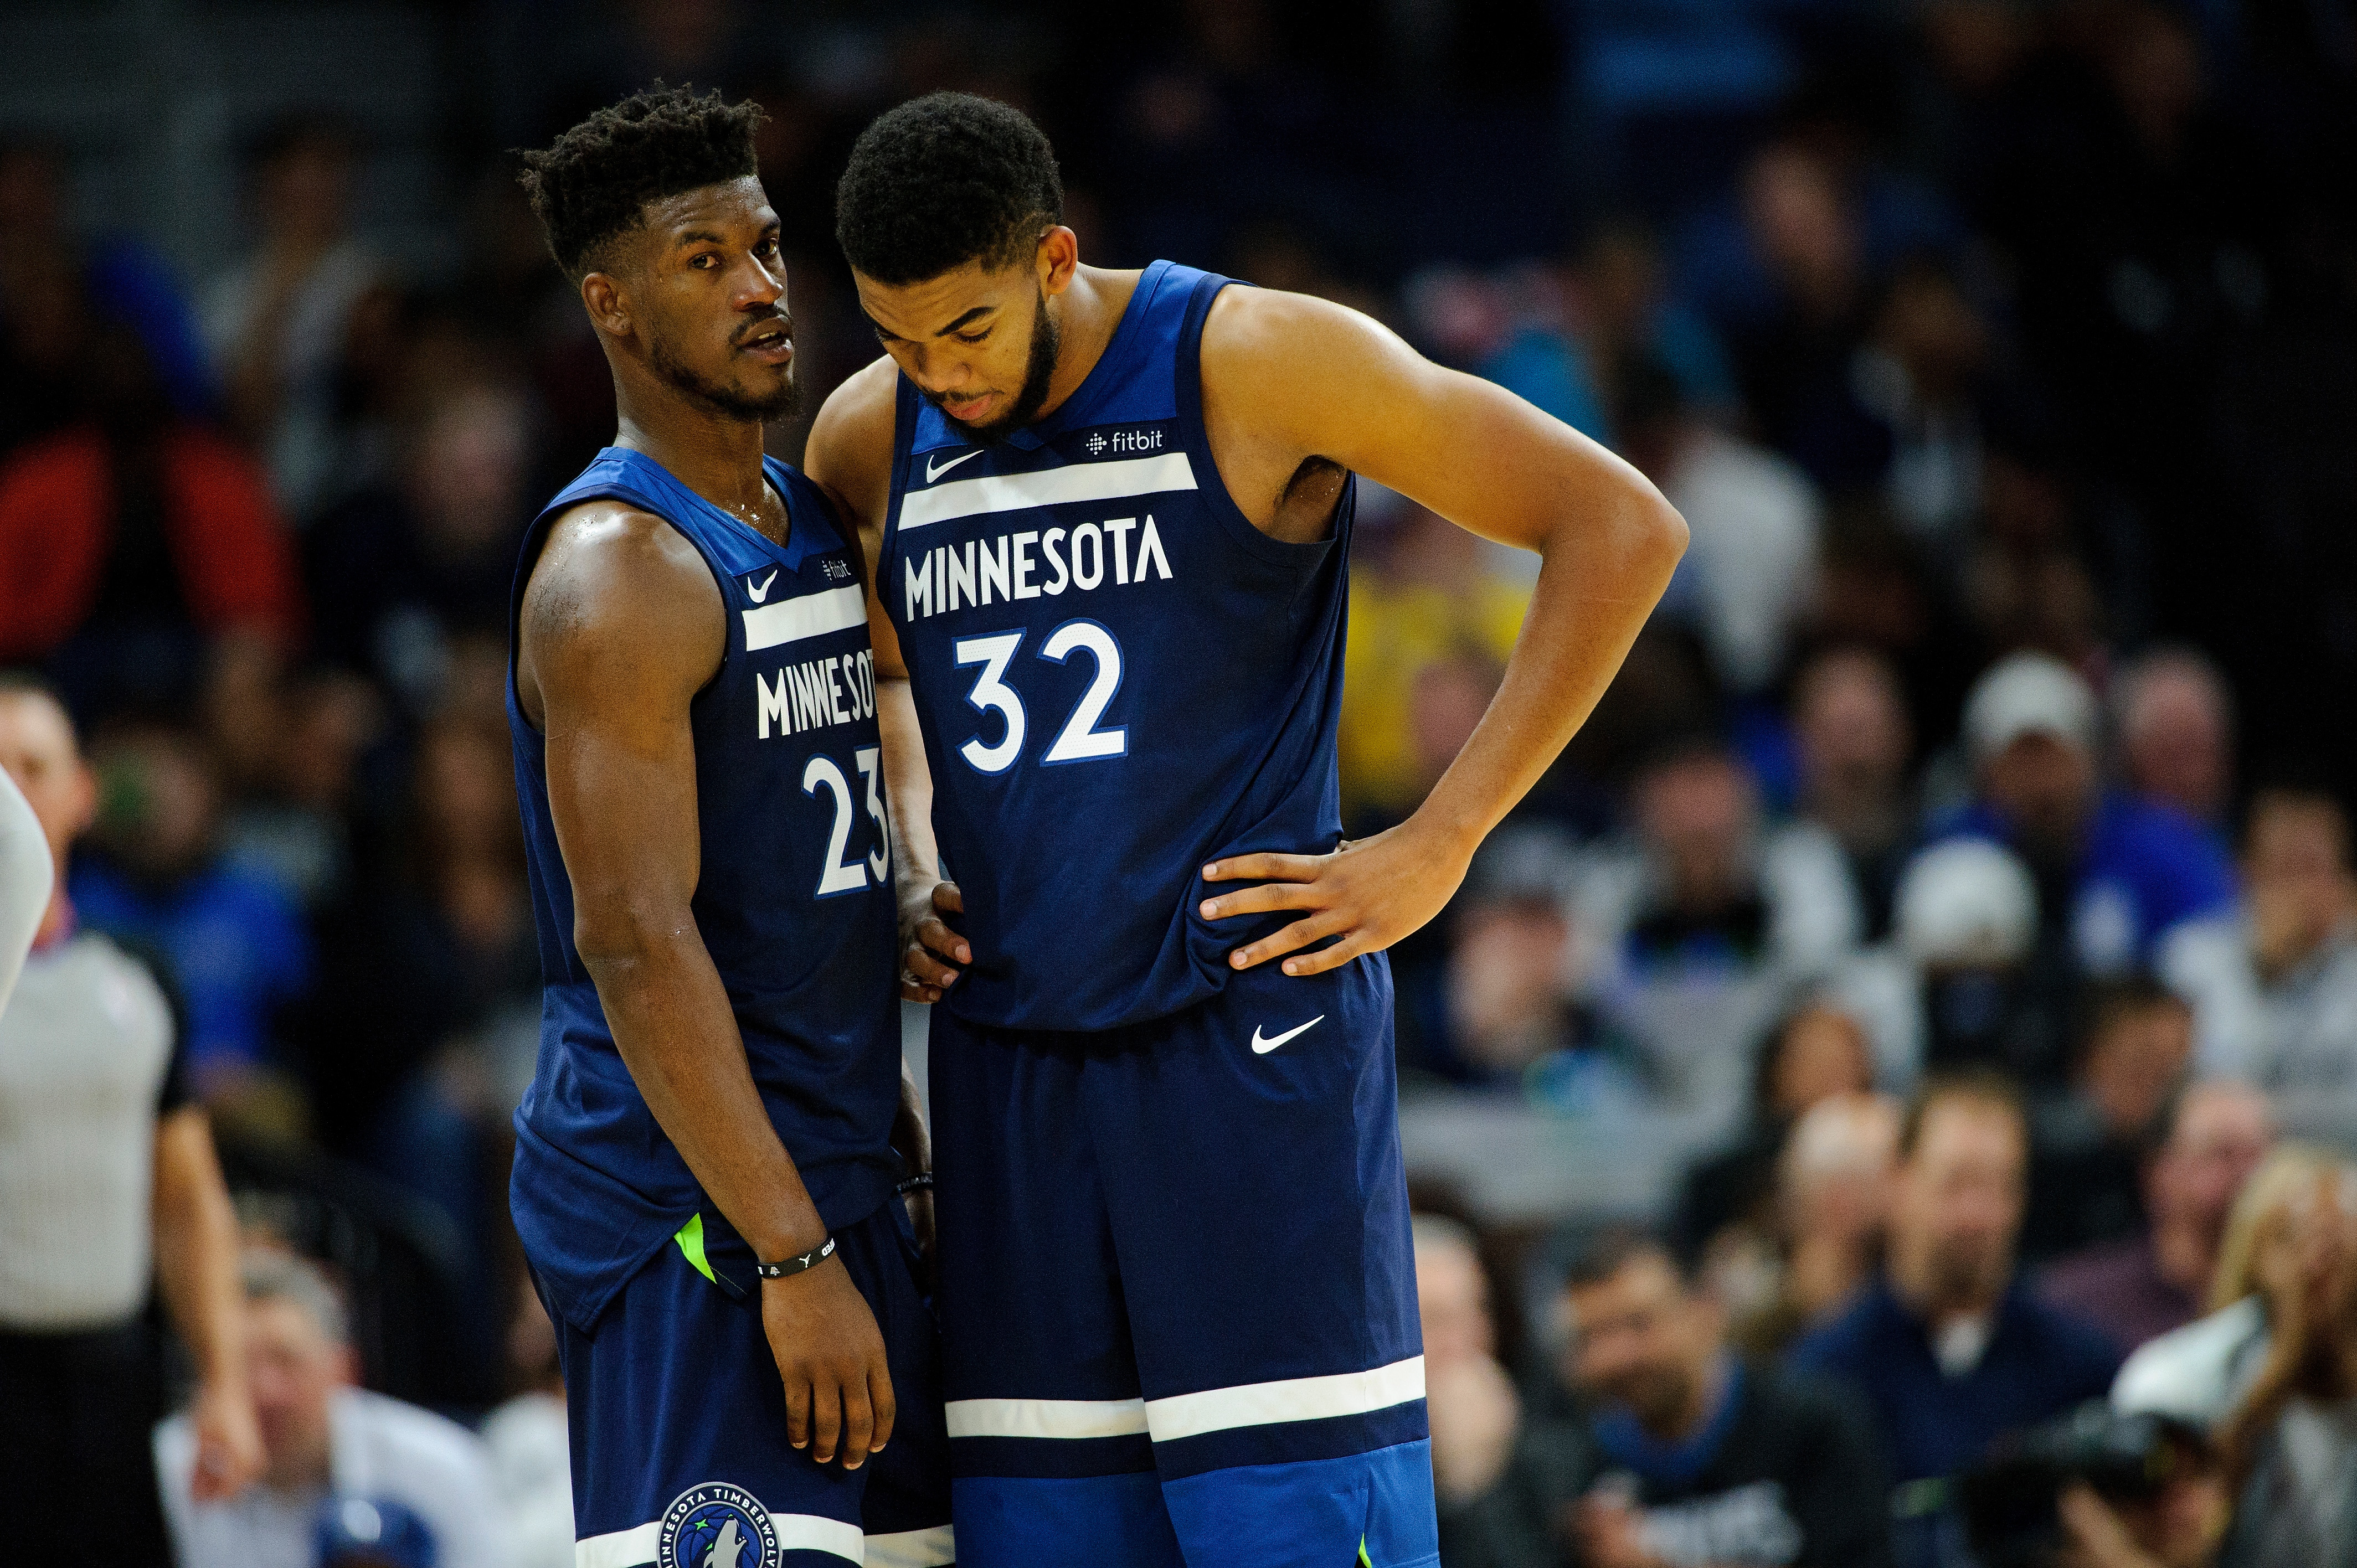 minneapolis mn october 27 jimmy butler 23 and karl anthony towns 32 of the minnesota timberwolves speak to each other during the game against the